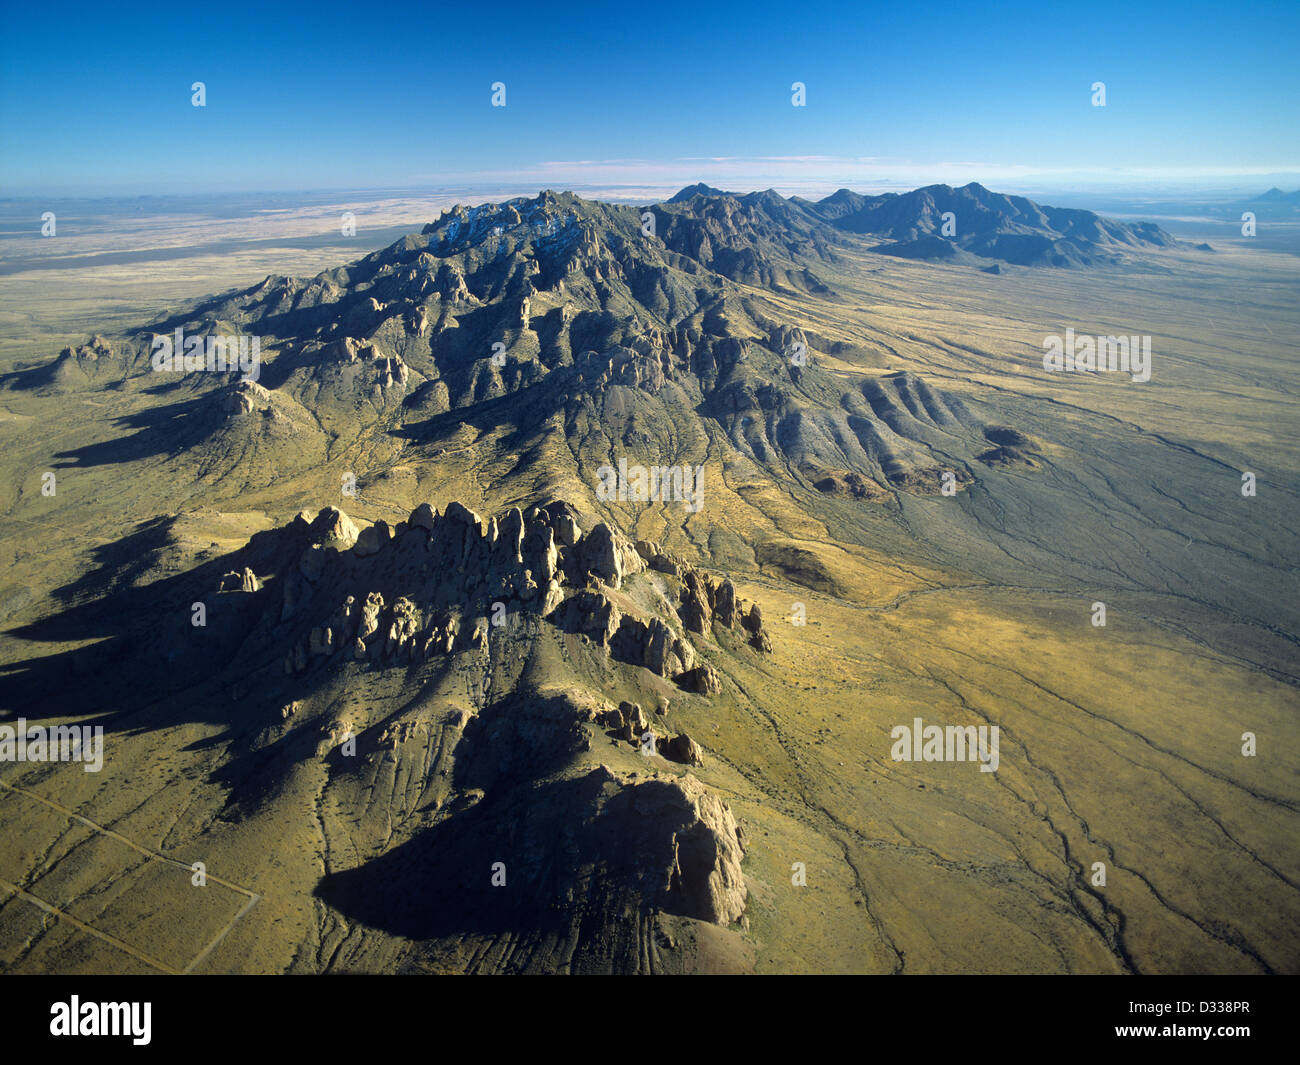 New mexico luna county columbus - Stock Photo U S A New Mexico Luna County Aerial View Of The Florida Mountains Near Deming